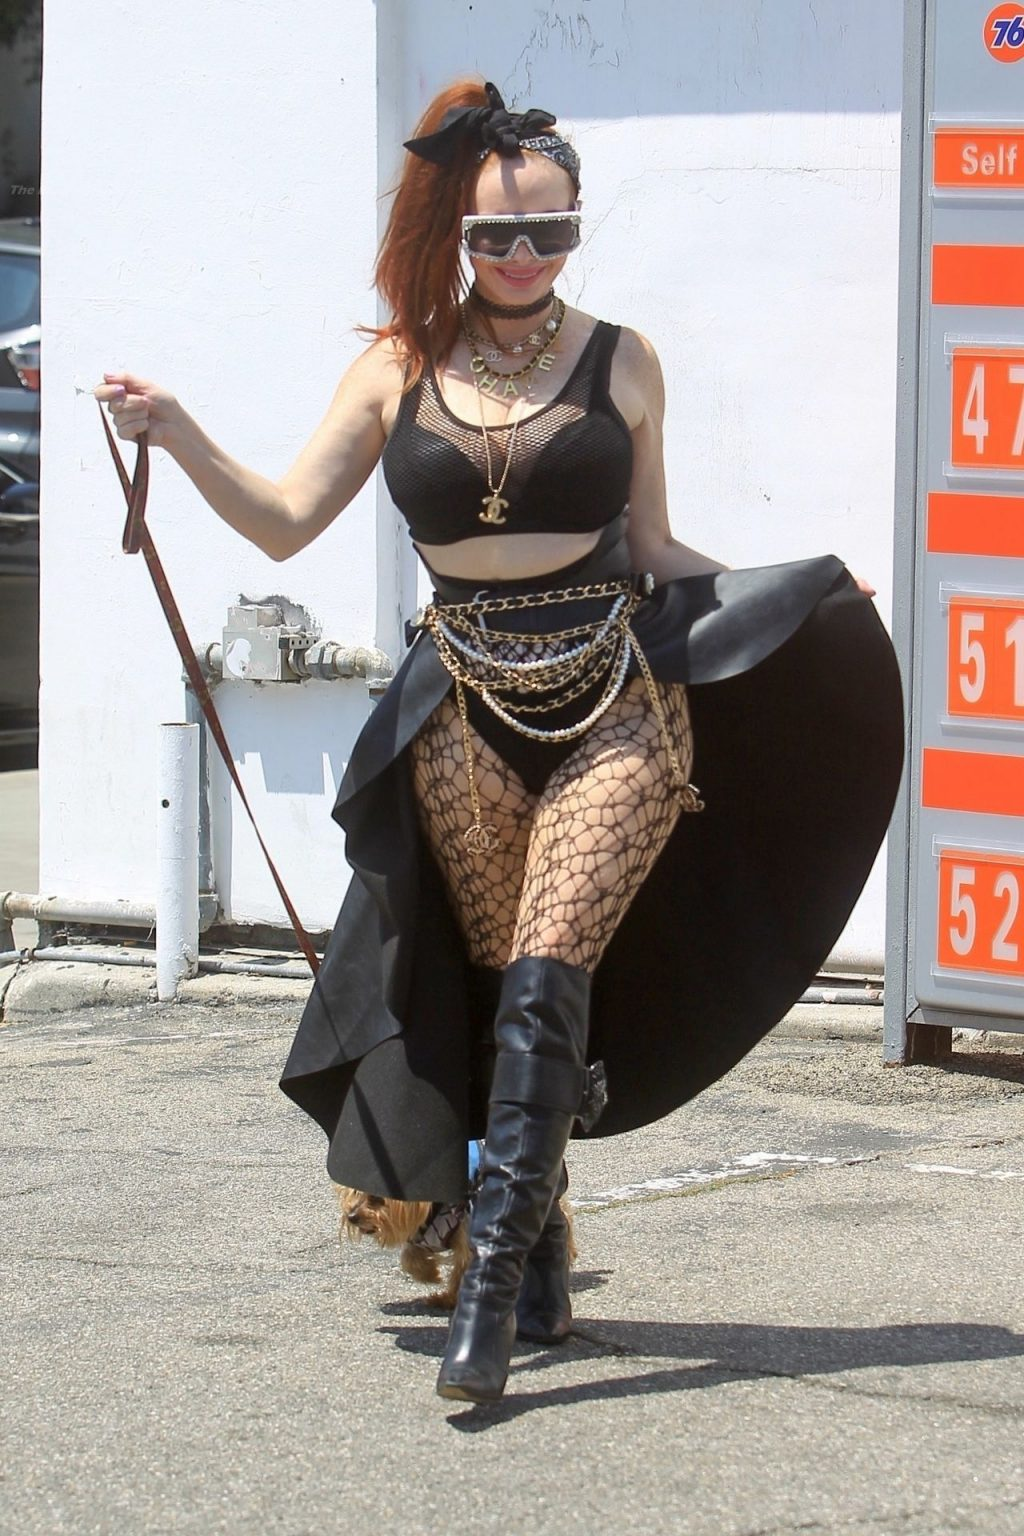 Phoebe Price Poses Up at the Pumps (19 Photos)